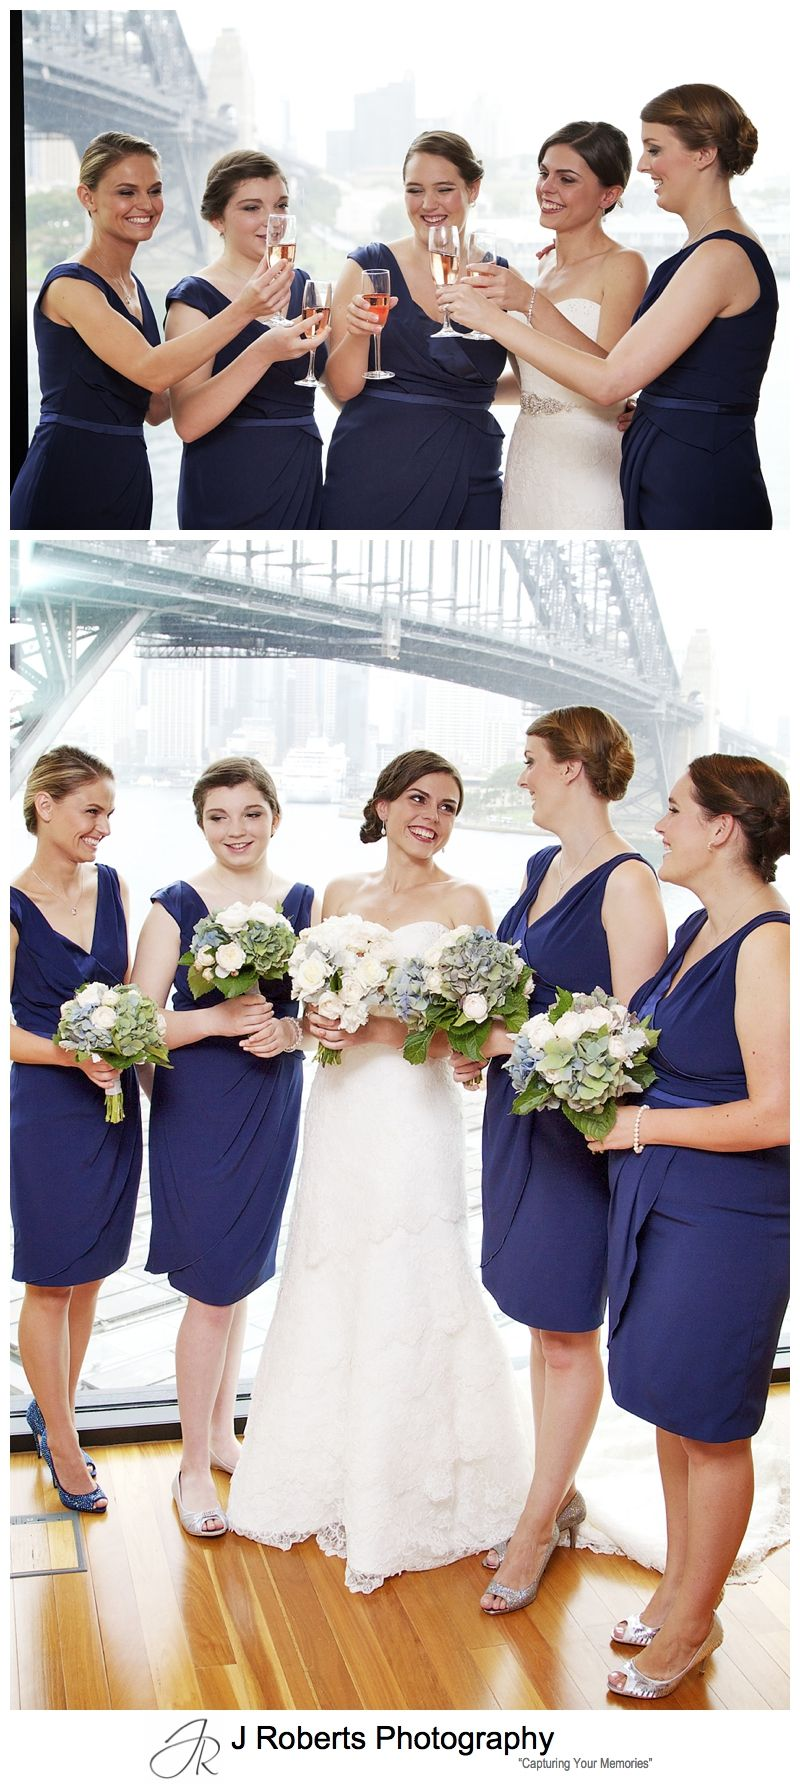 Bride celebrating with bridesmaids in blue - sydney wedding photography